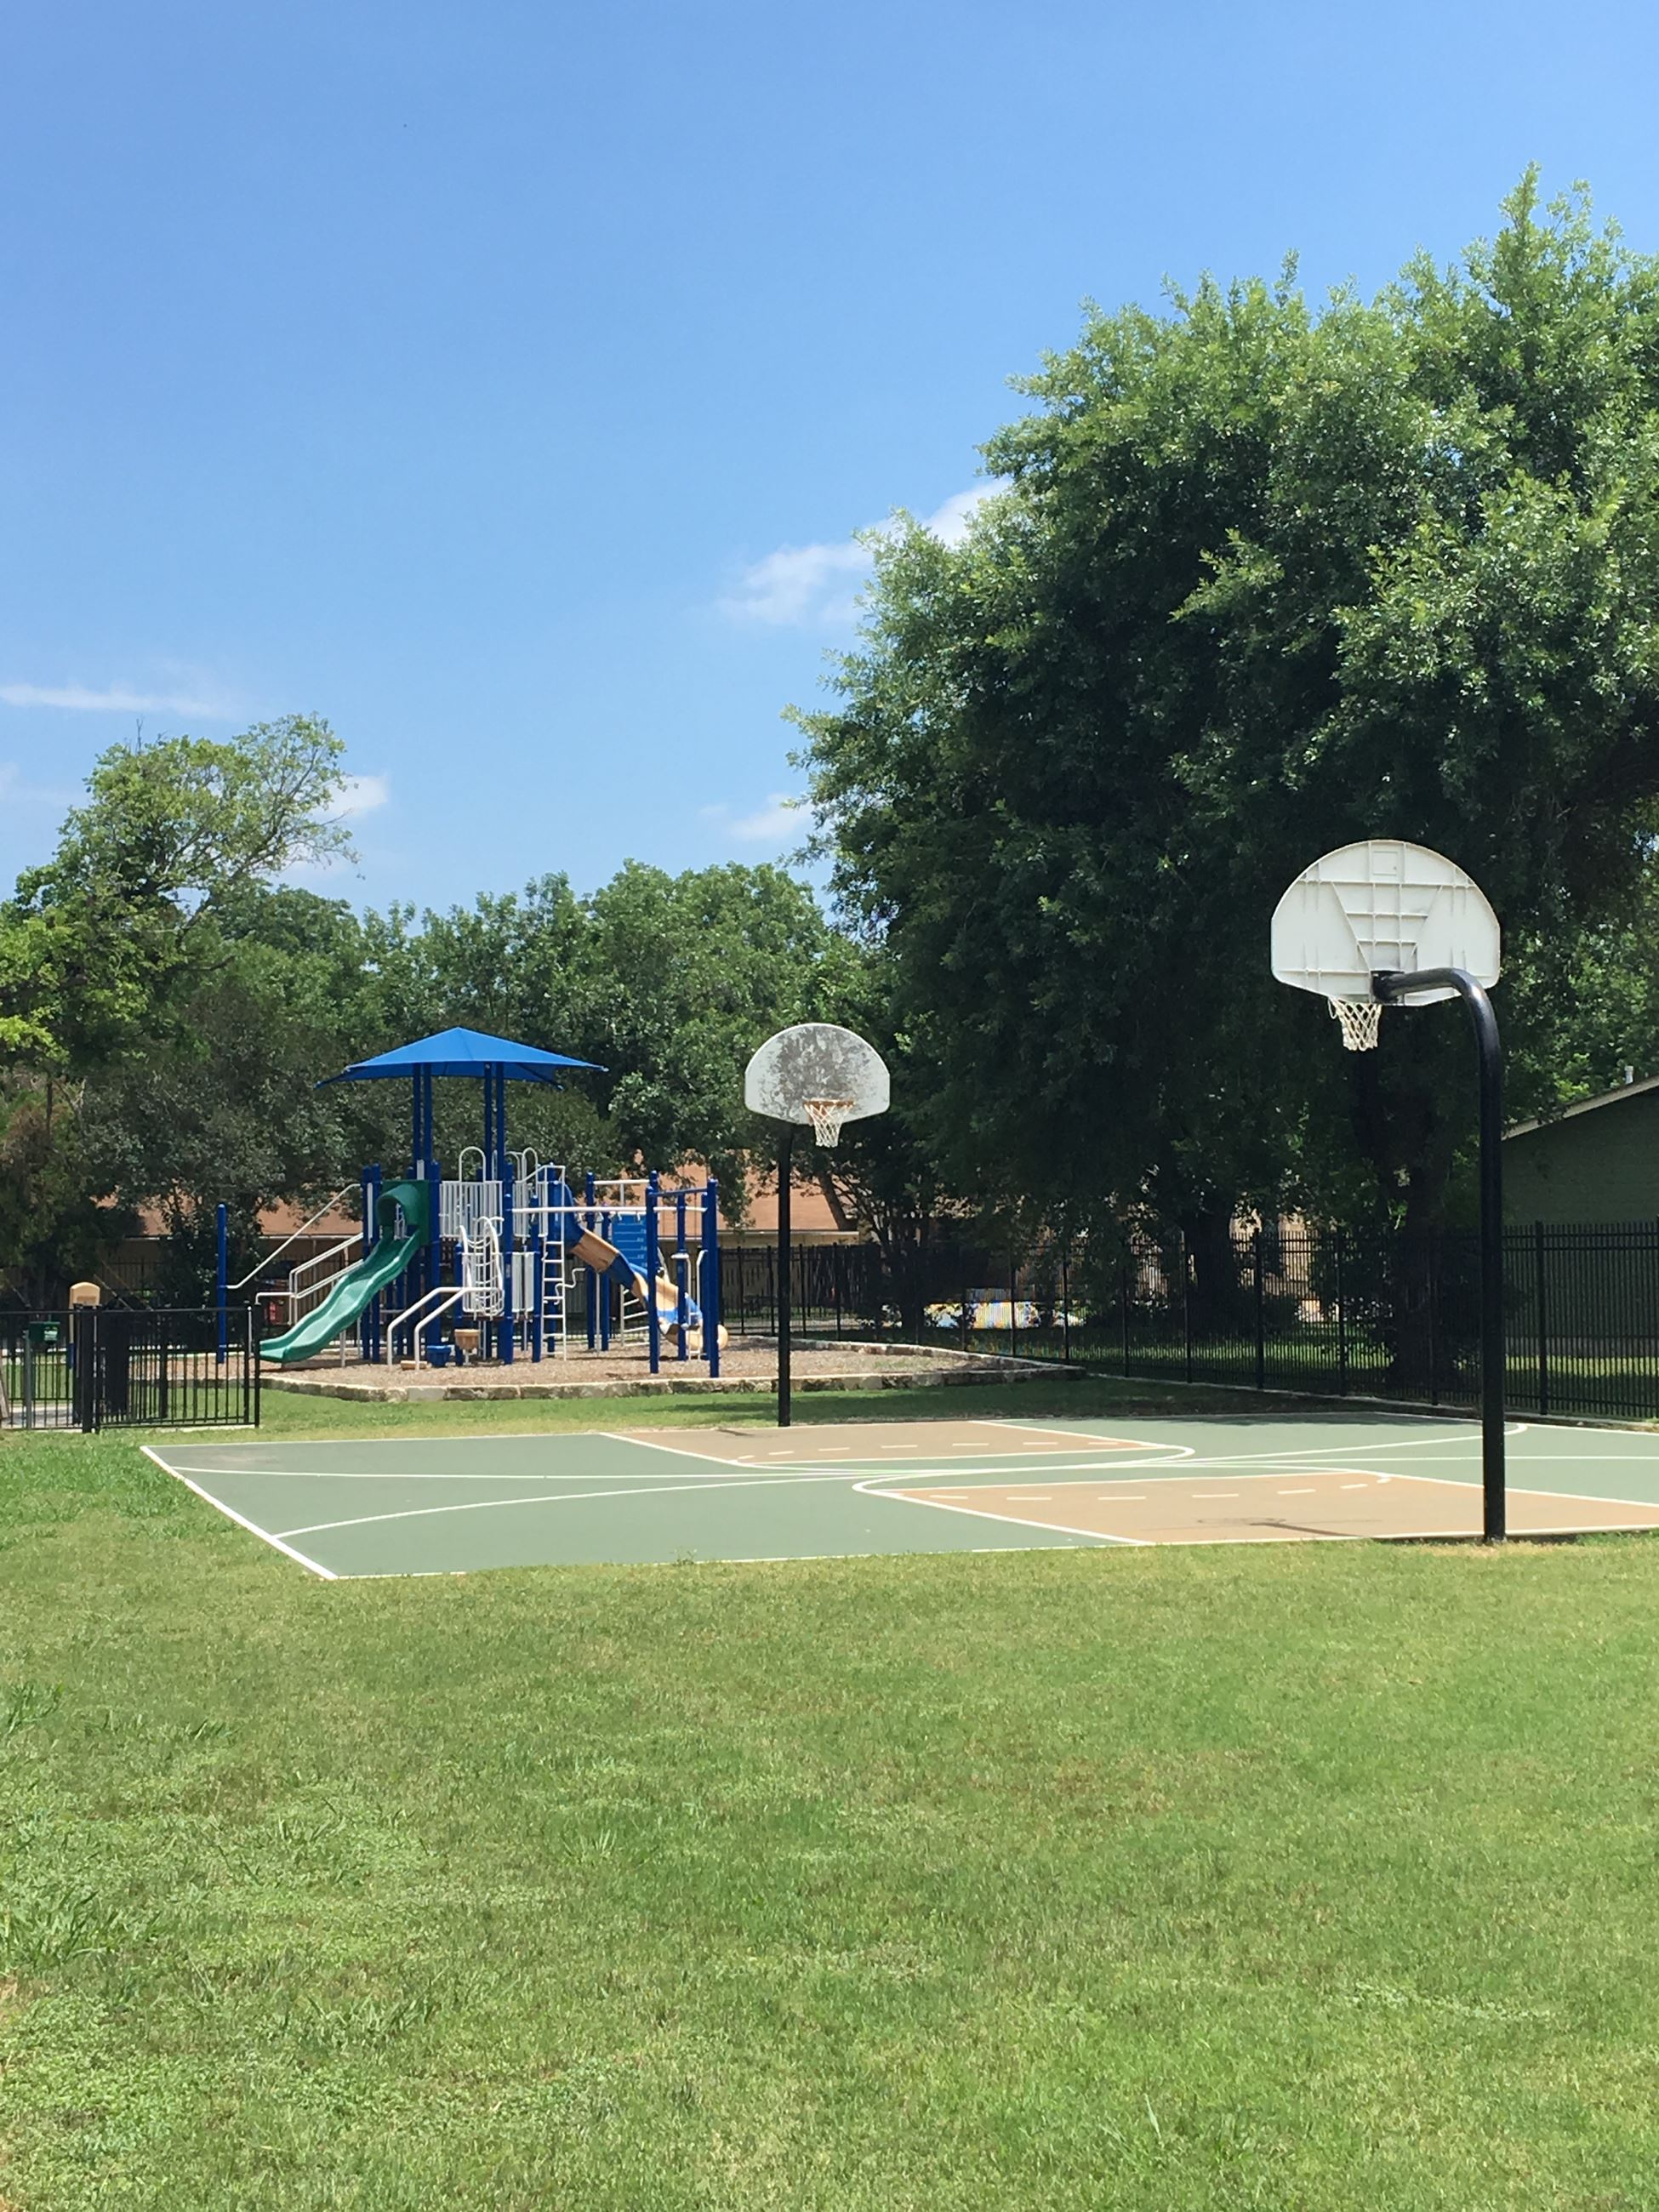 photo of basketball court and playground